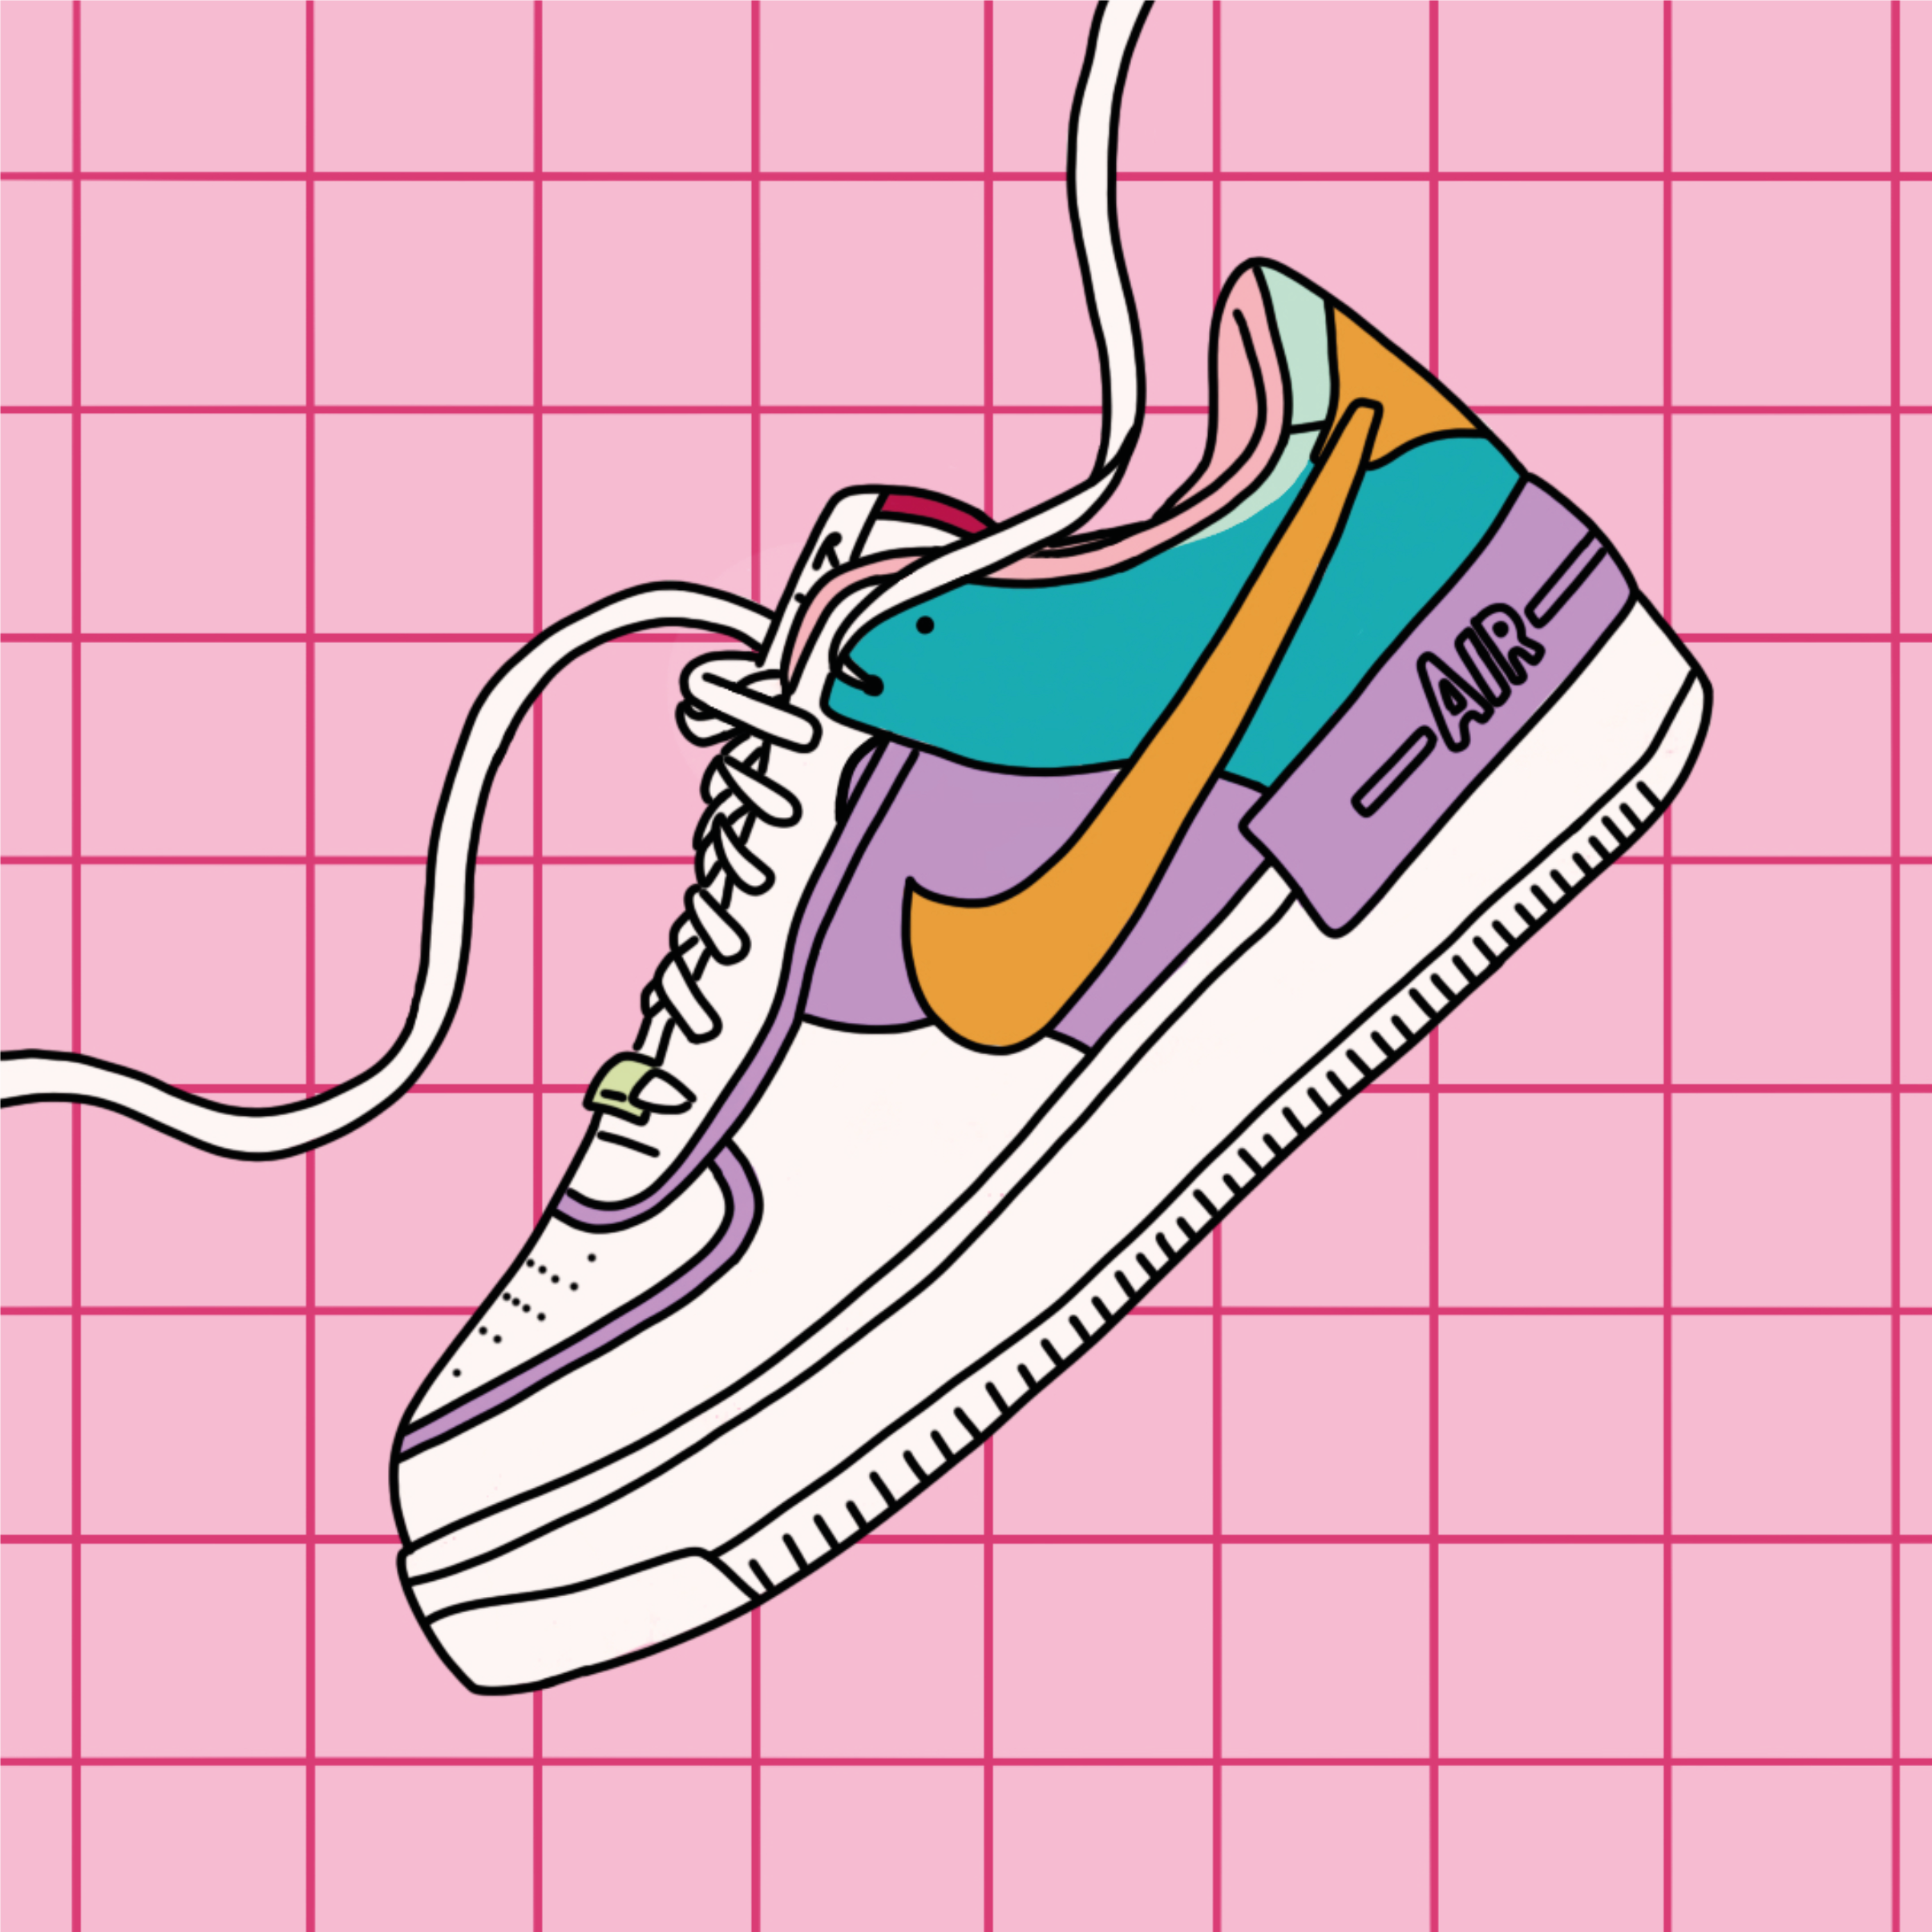 Nike Air 1 Shoe Illustration Pink Fashion Style A4 Print Sneaker Art Shoes Illustration Sneakers Illustration